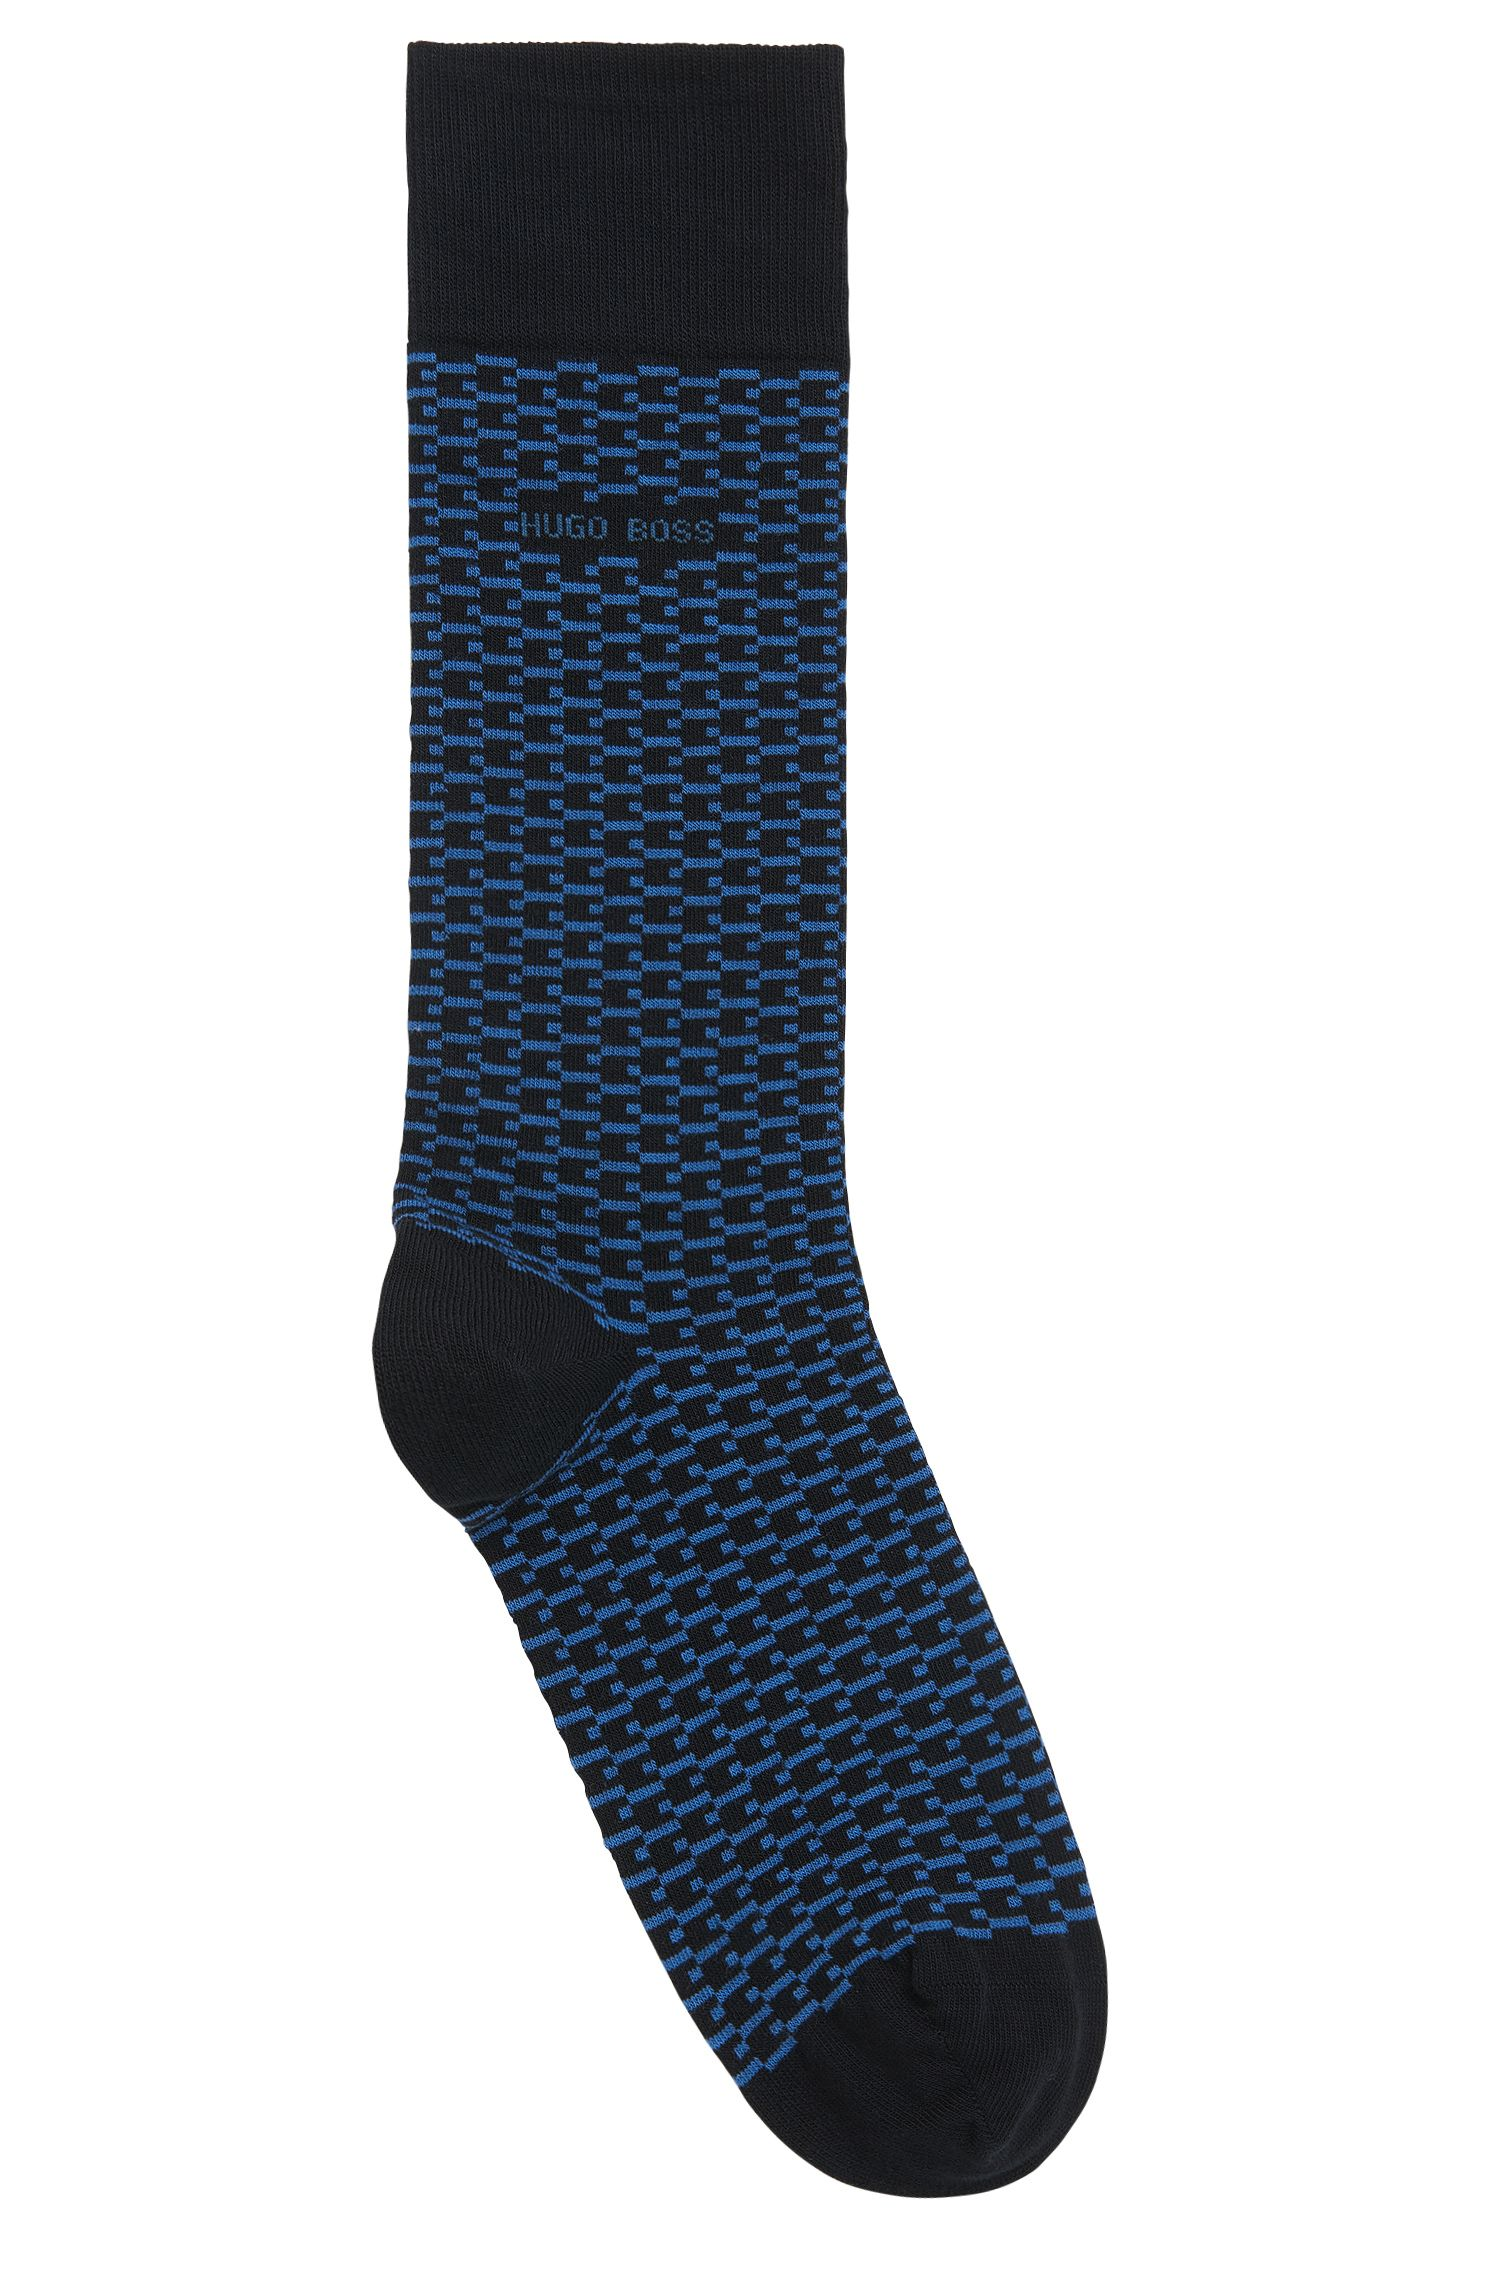 Stretch Cotton Blend Sock | RS MiniPattern US CC